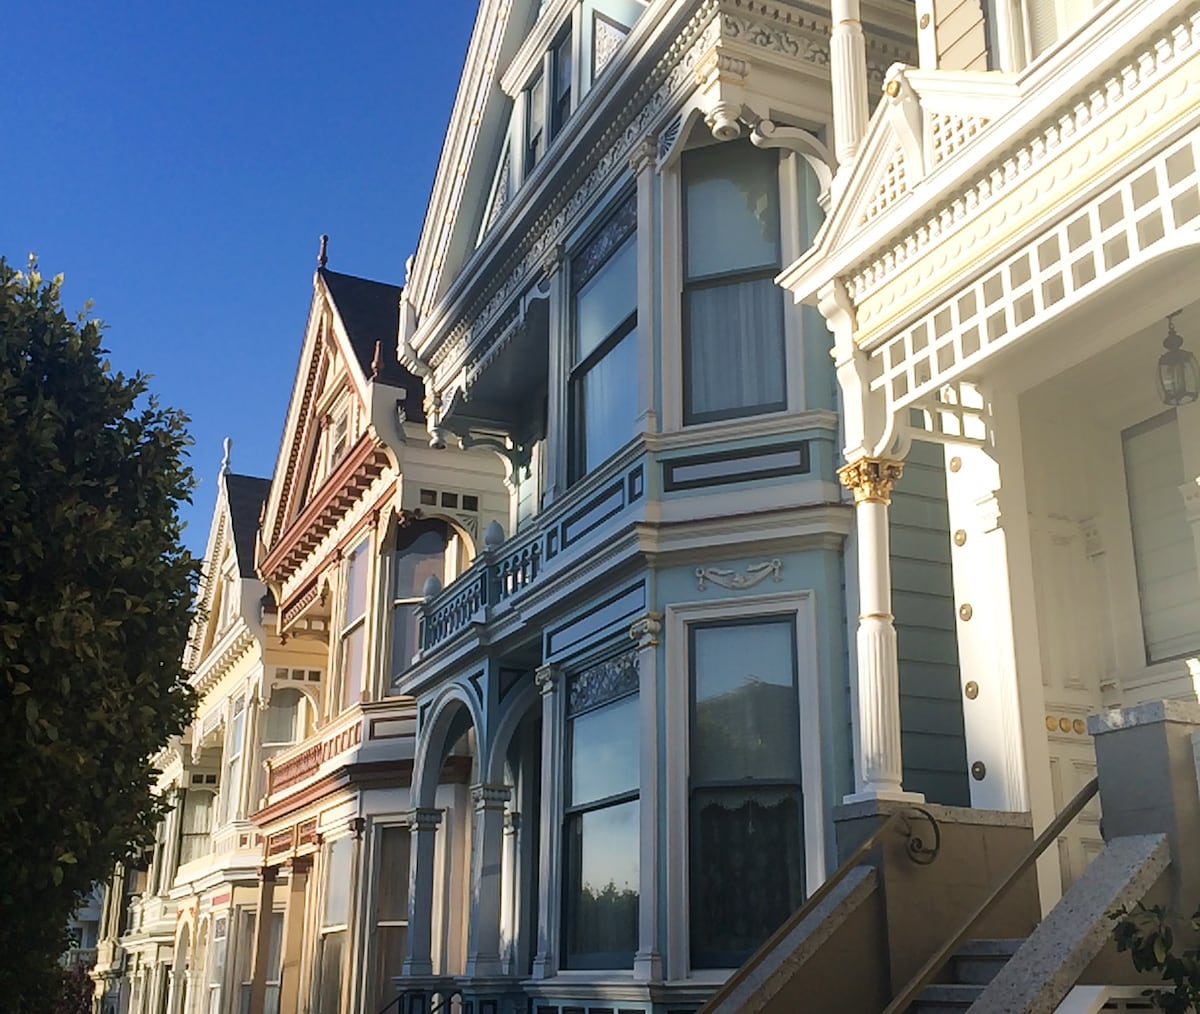 Sunny, Central, Charming Victorian